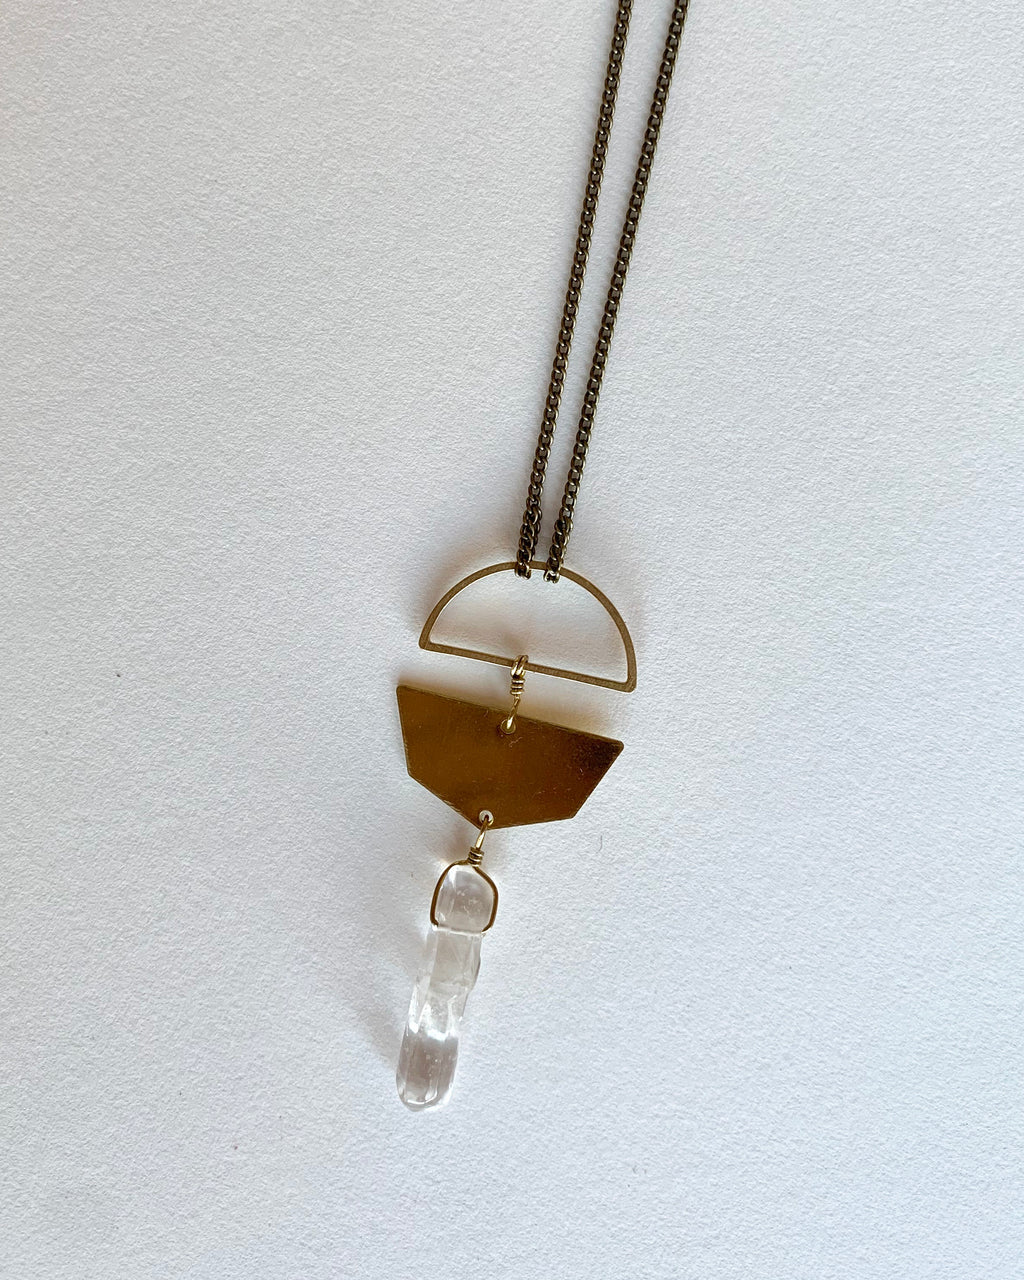 Crystal Quartz Necklace in Gold